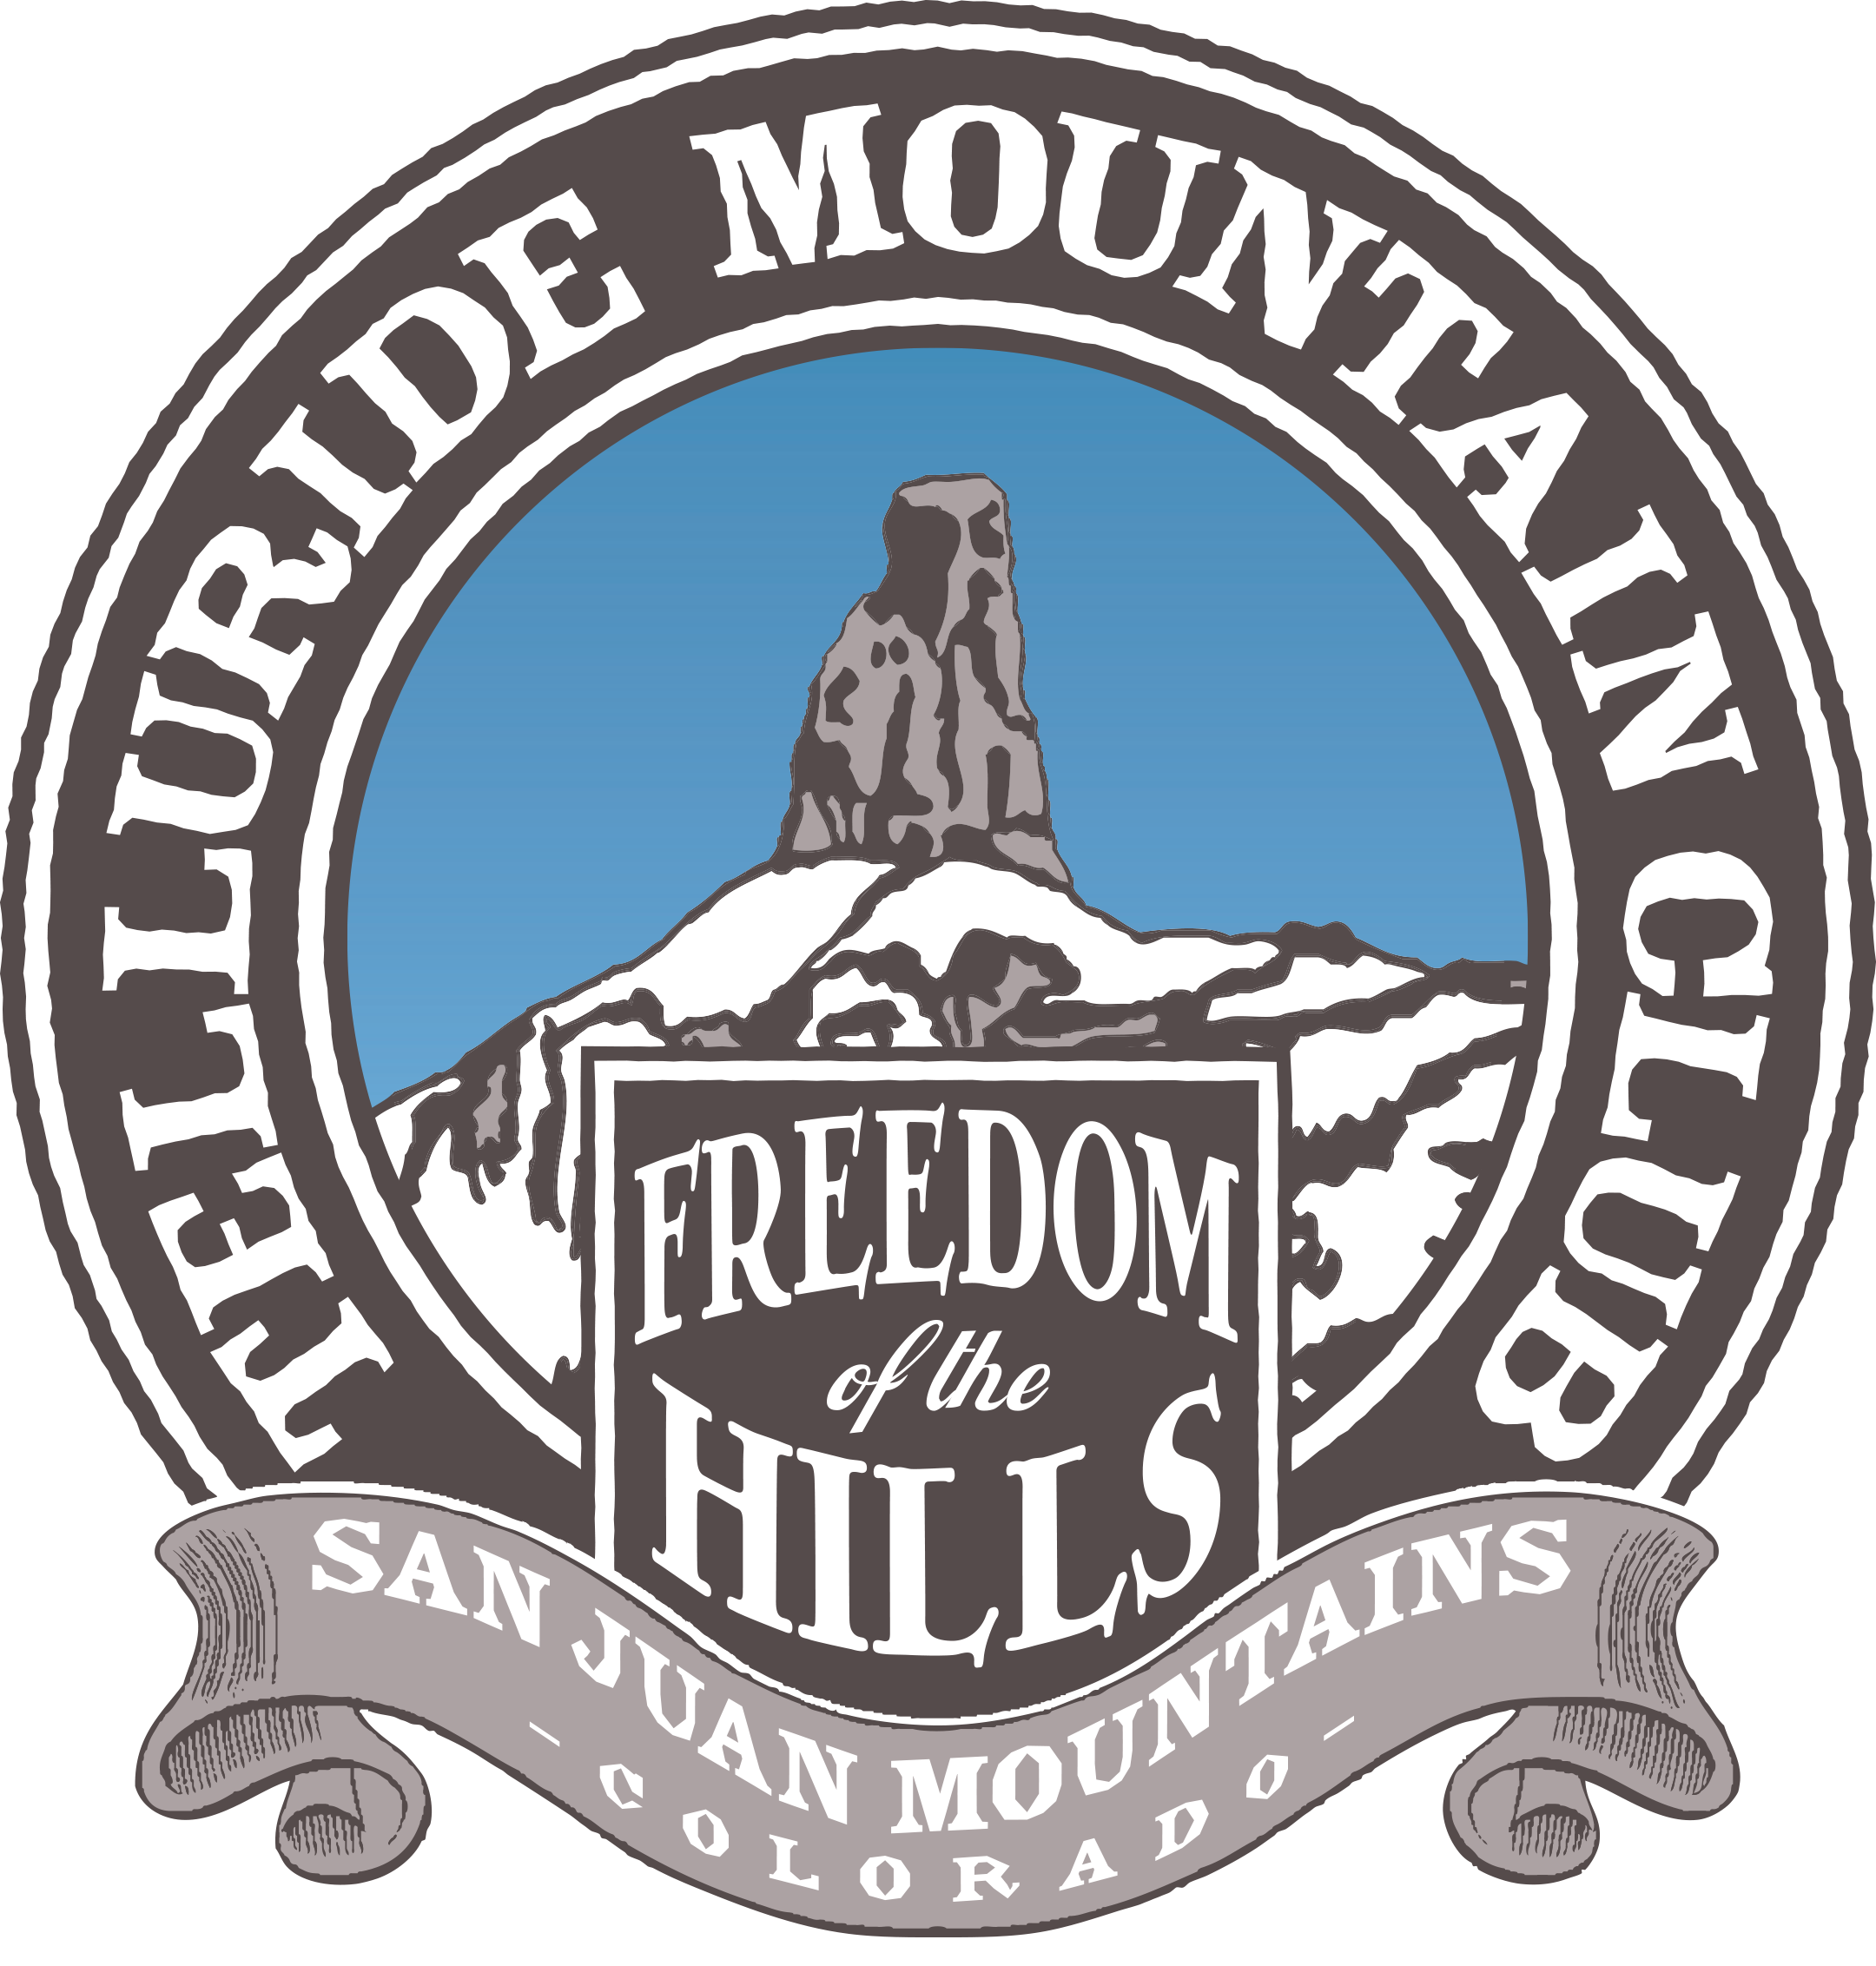 Telluride Mountain Club - Our mission is to advocate for safe, accessible, enjoyable and respectful opportunities for human-powered recreational activities in the Telluride region, through education, awareness and collaboration.